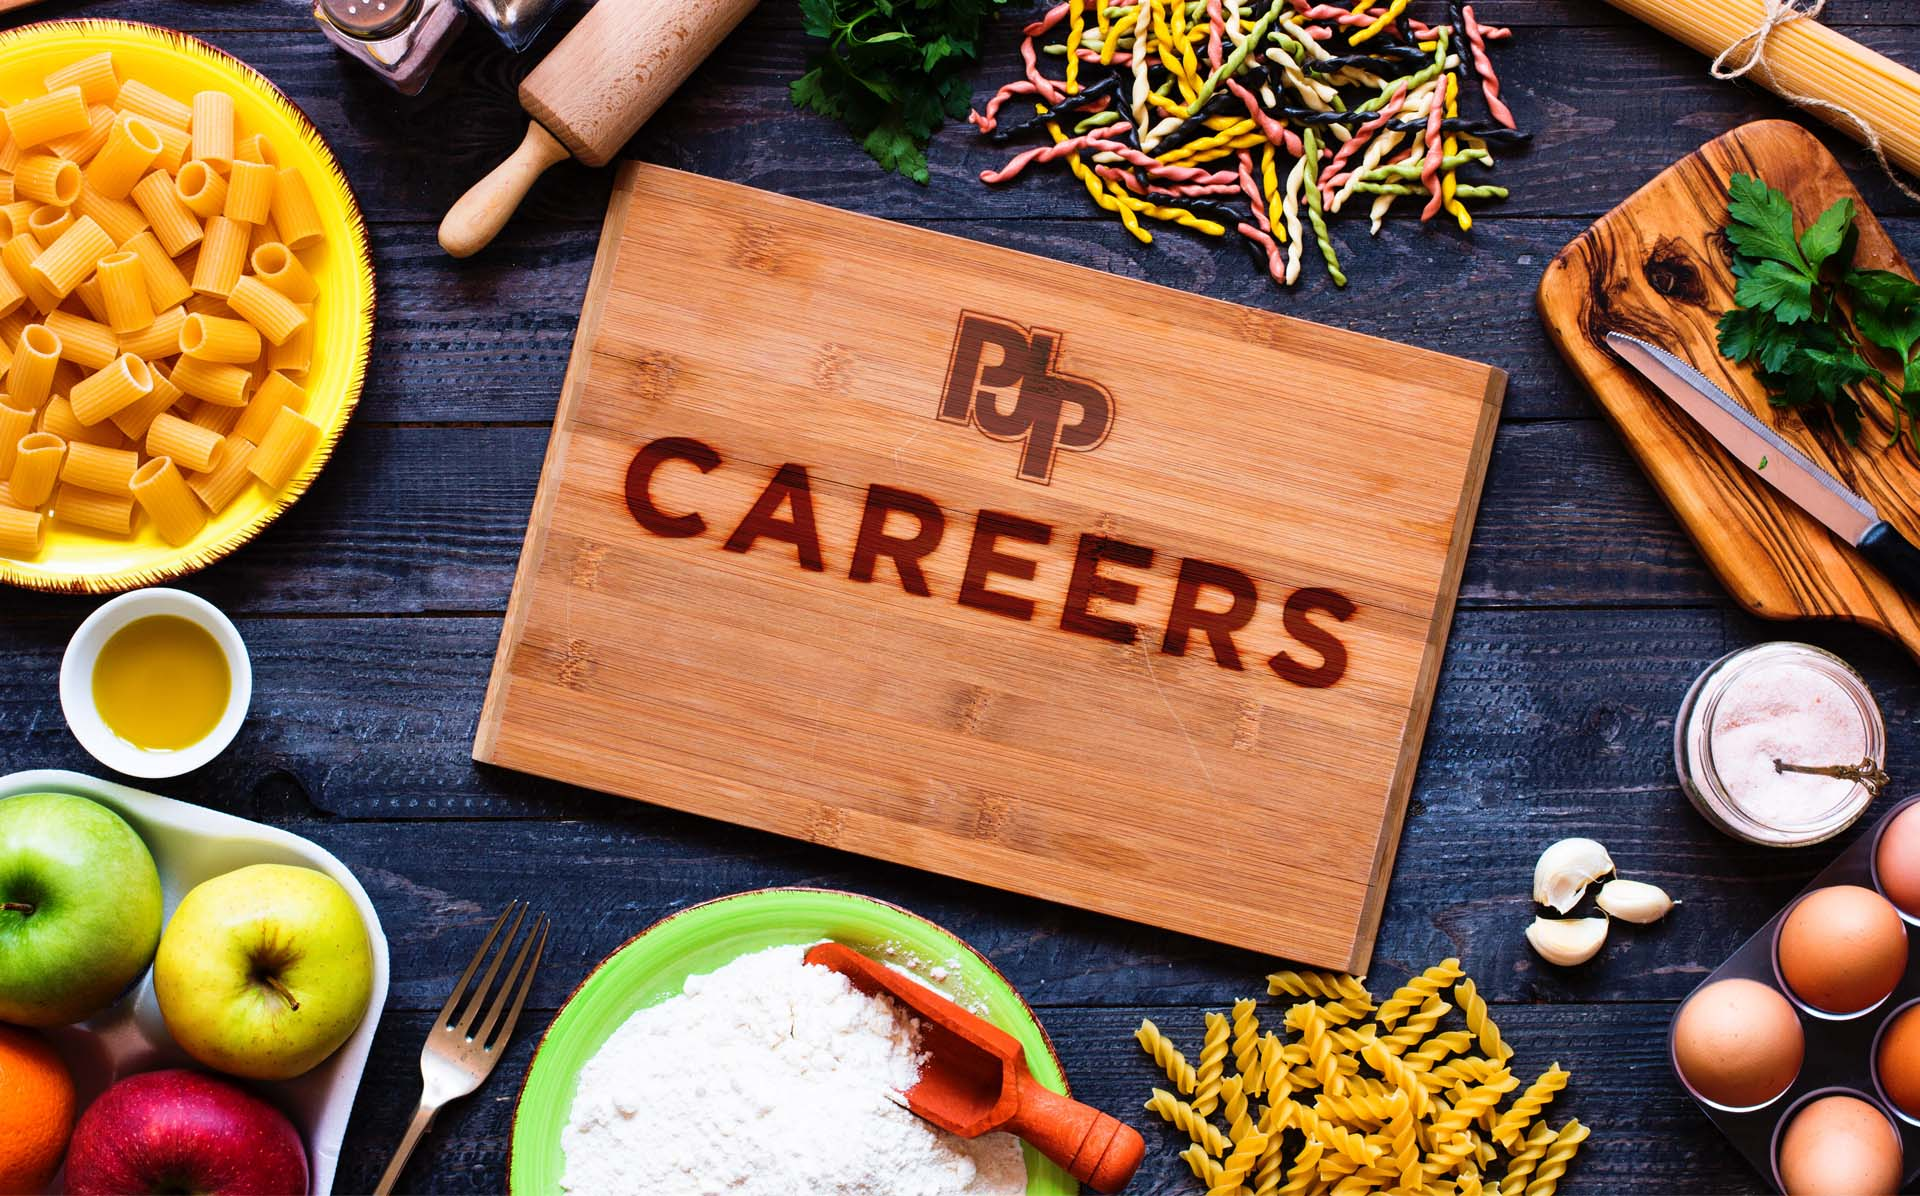 Careers at PJP